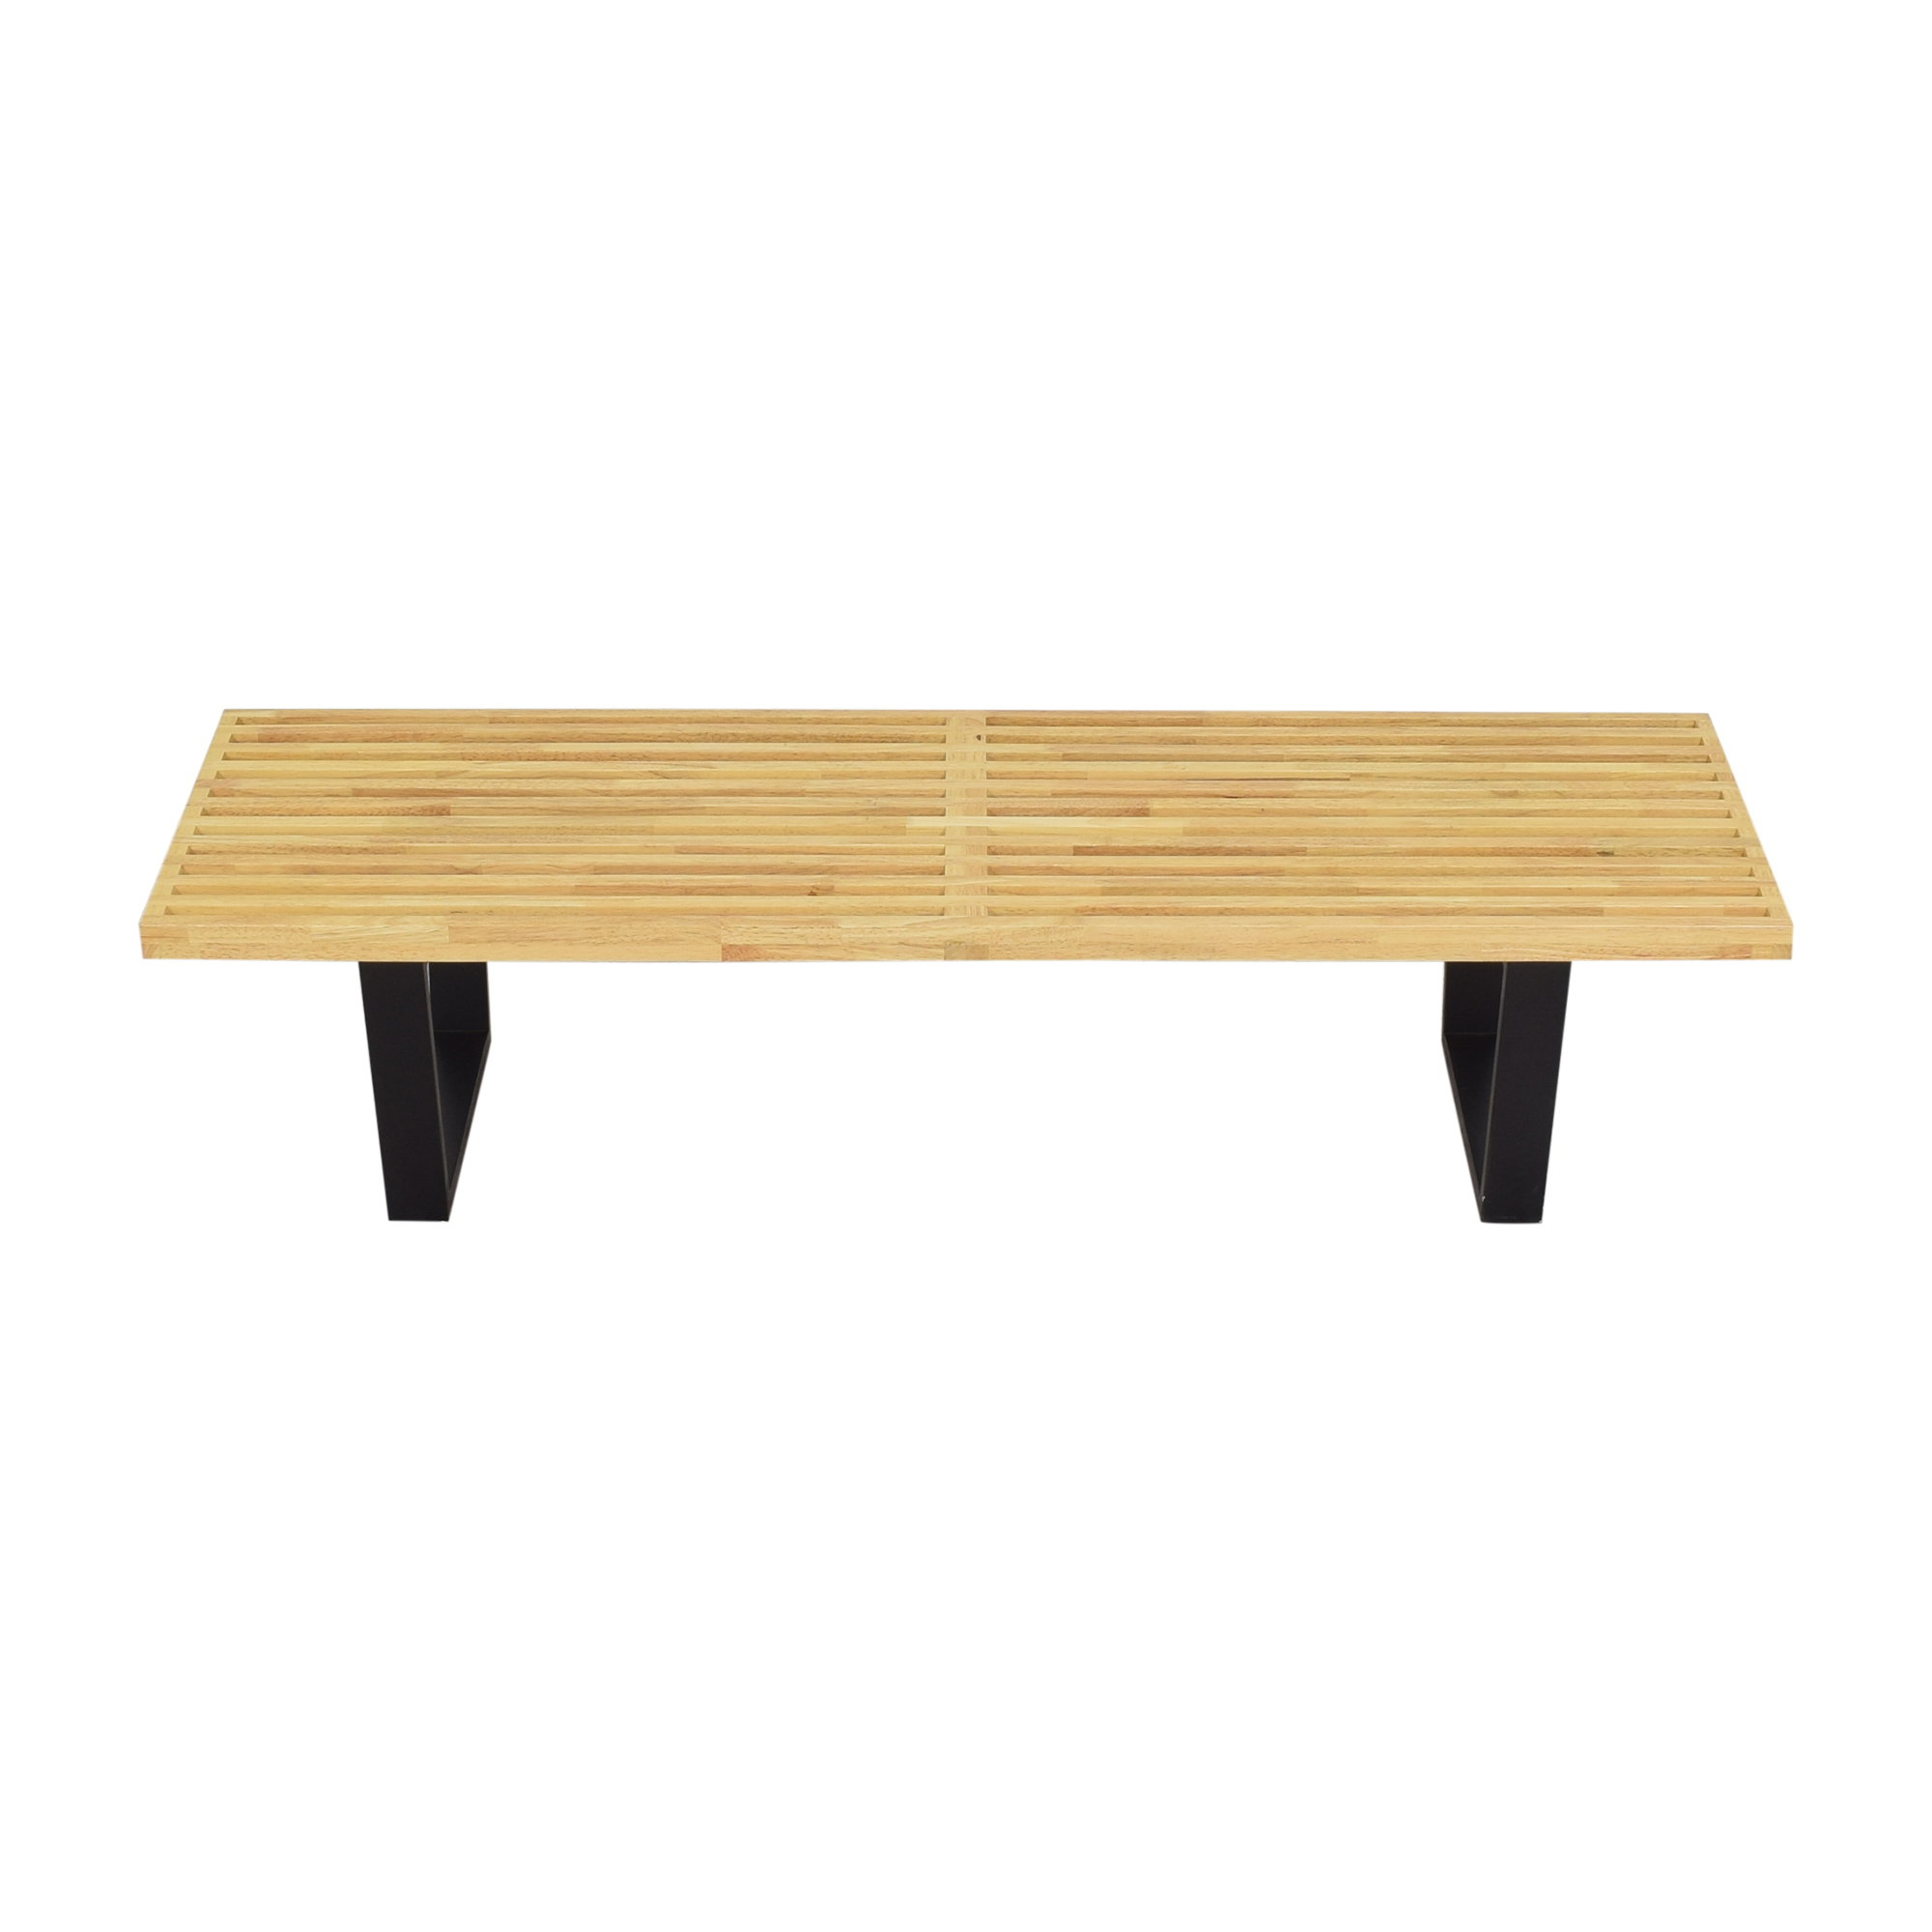 Nelson-Style Platform Bench discount